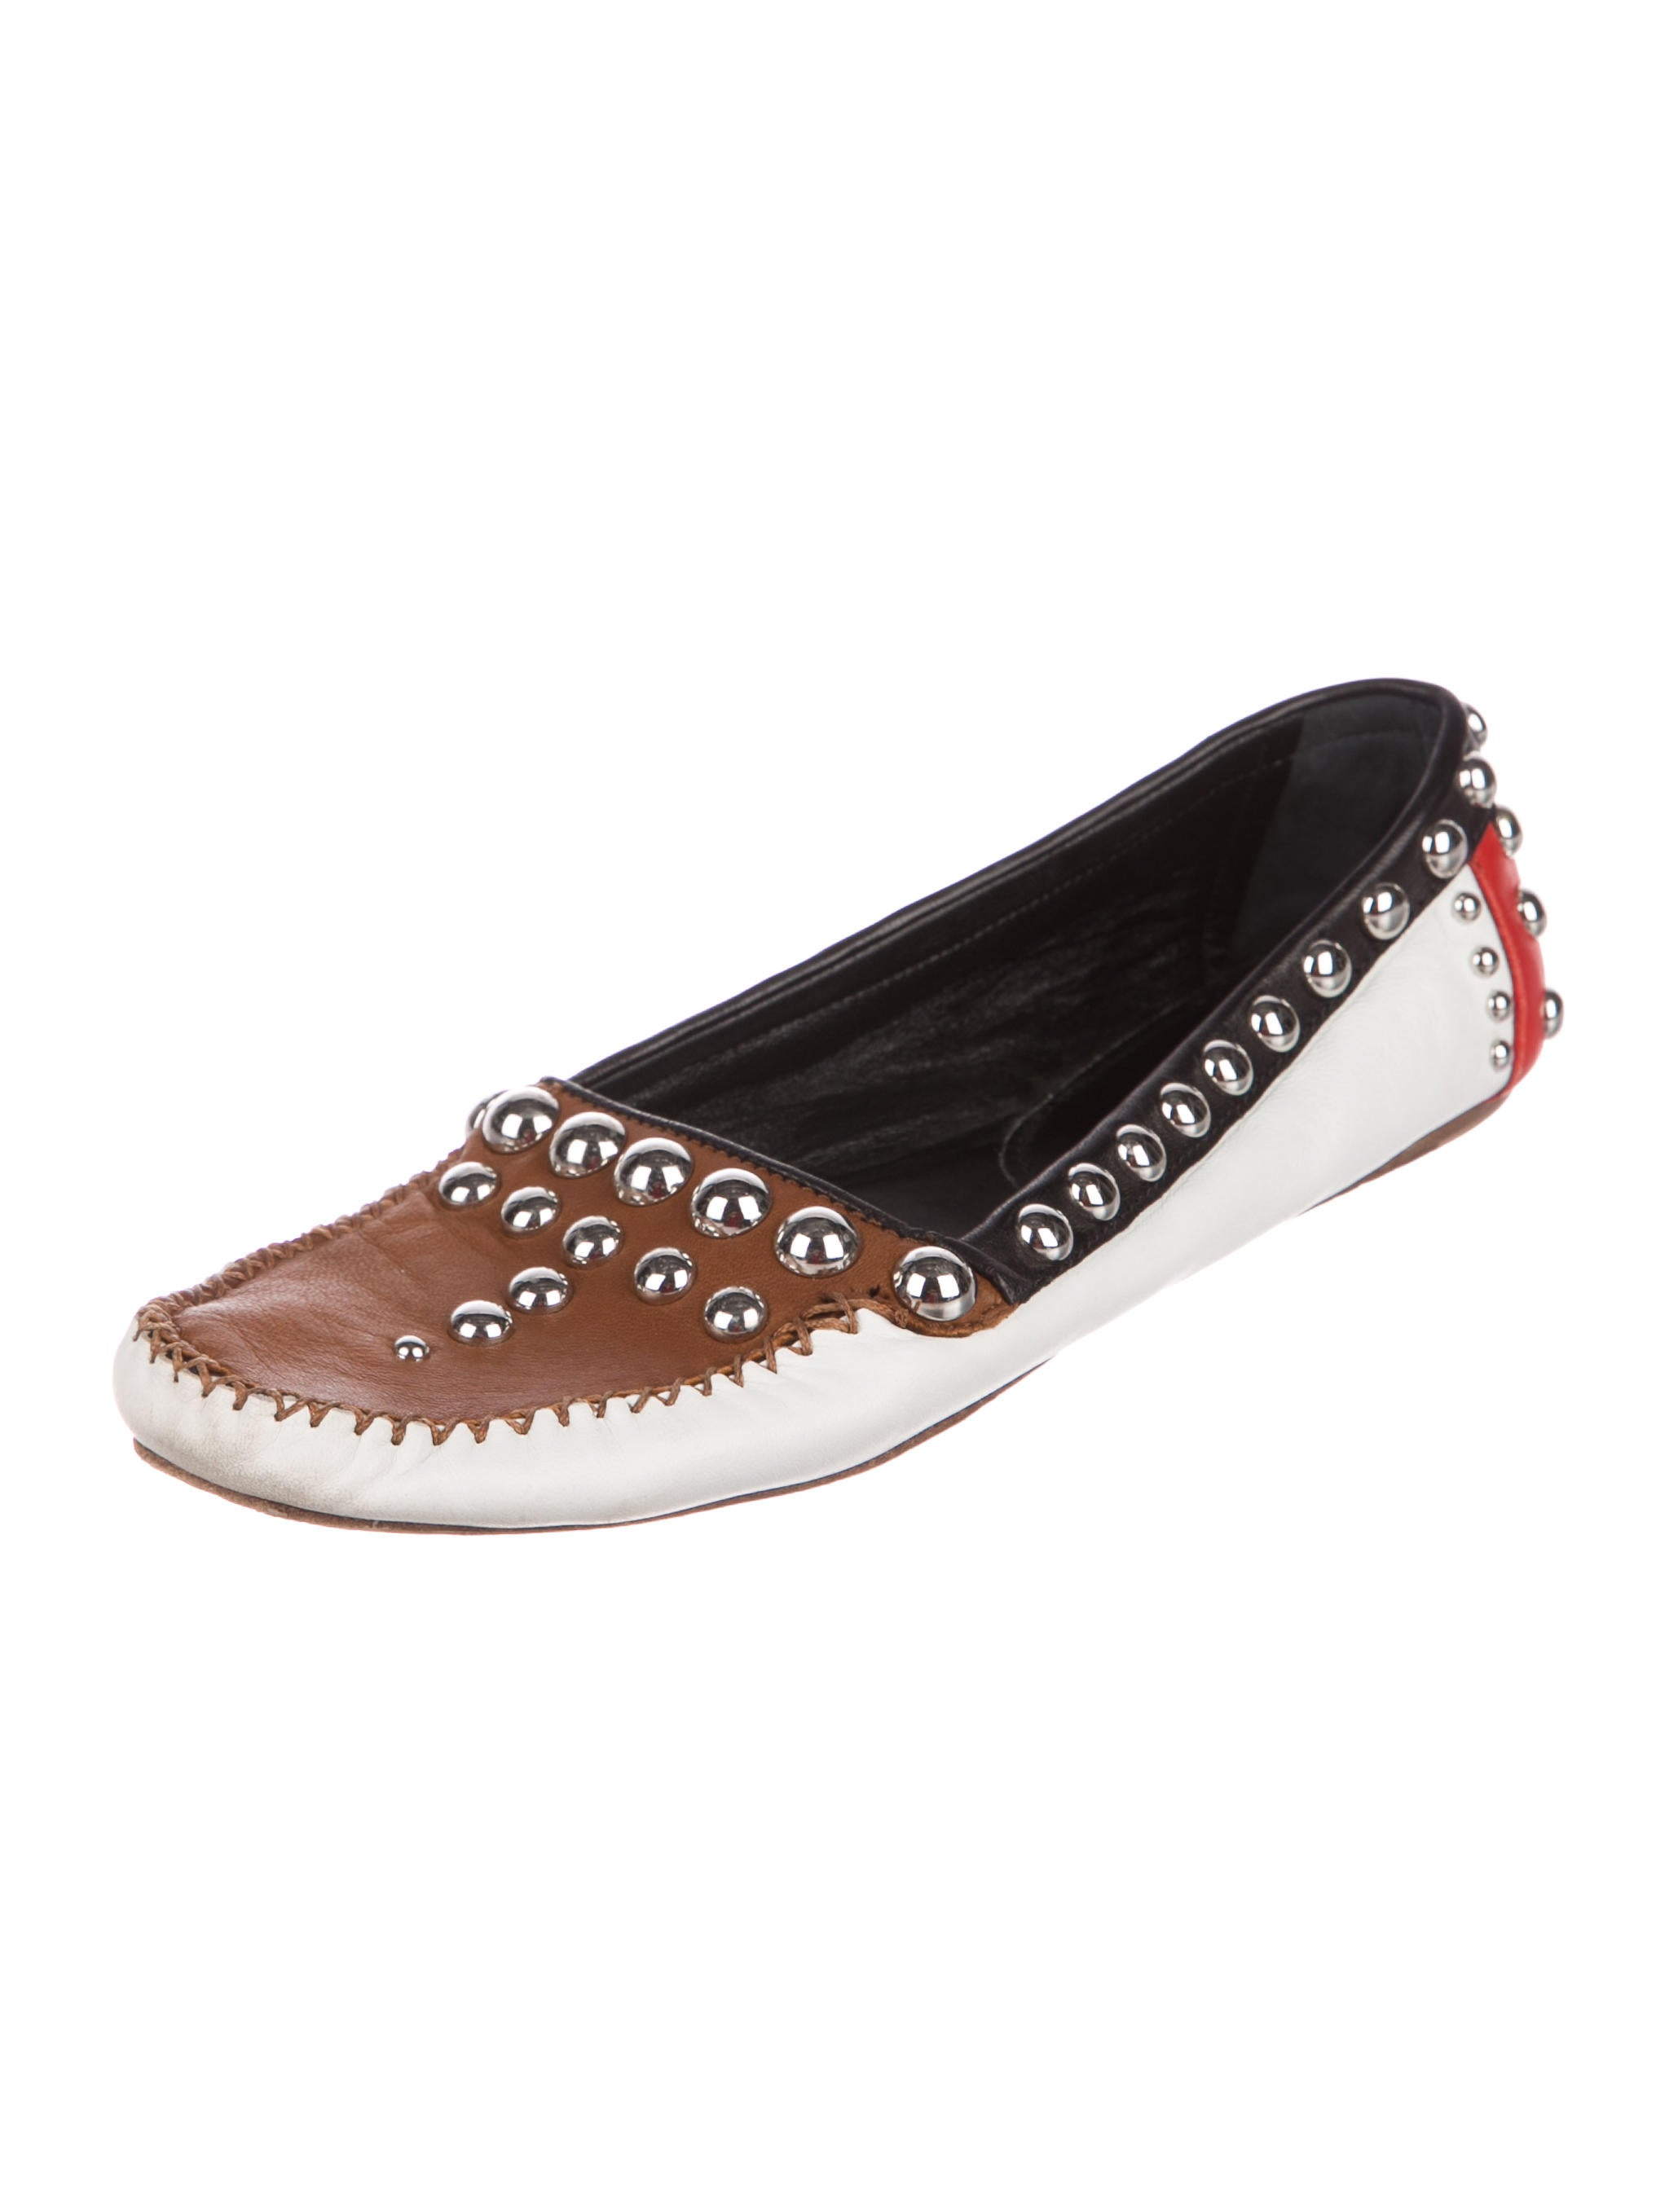 outlet best seller cheap sale low shipping Prada Patchwork Studded Loafers cheap prices authentic 6taqBn